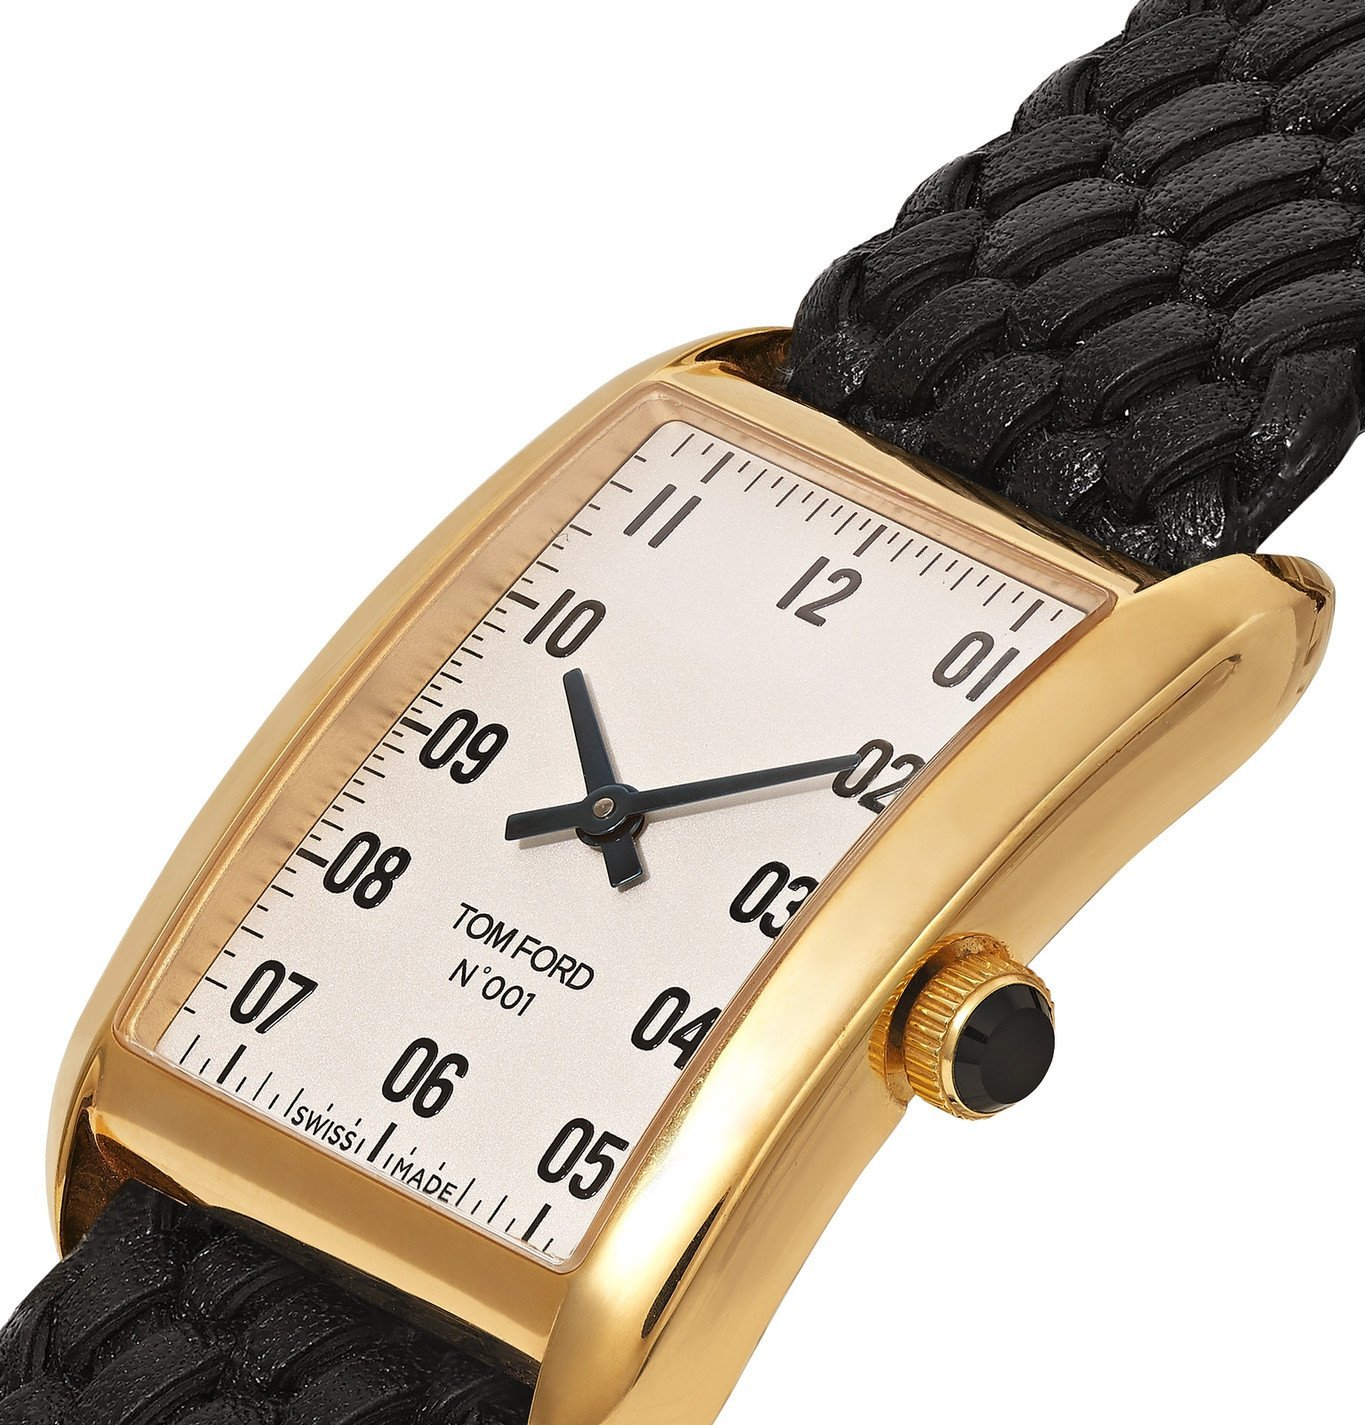 Tom Ford Timepieces - 001 18-Karat Gold and Woven Leather Watch - White